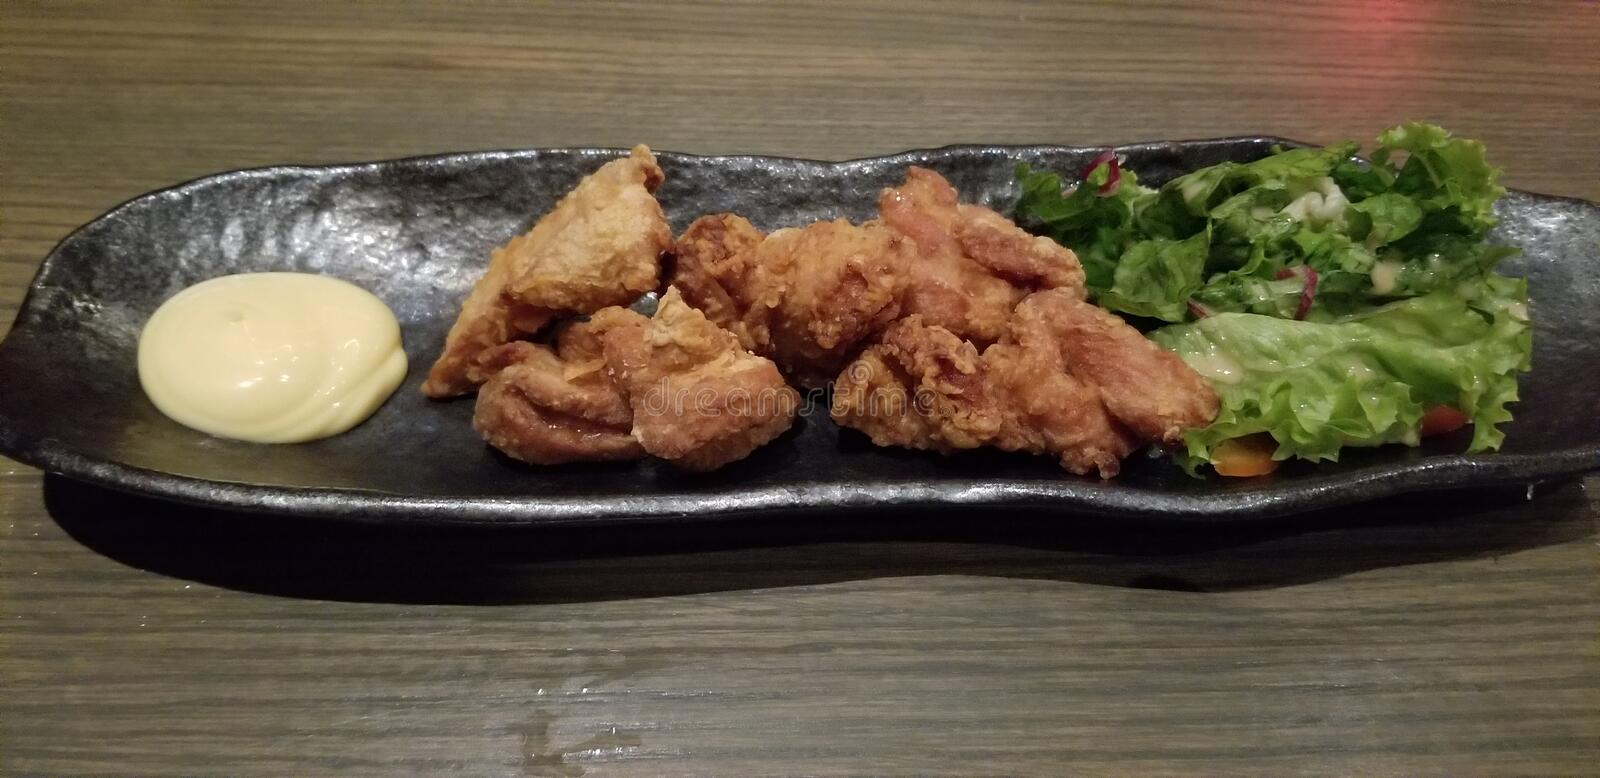 Fried Chicken Karage japonês imagem de stock royalty free